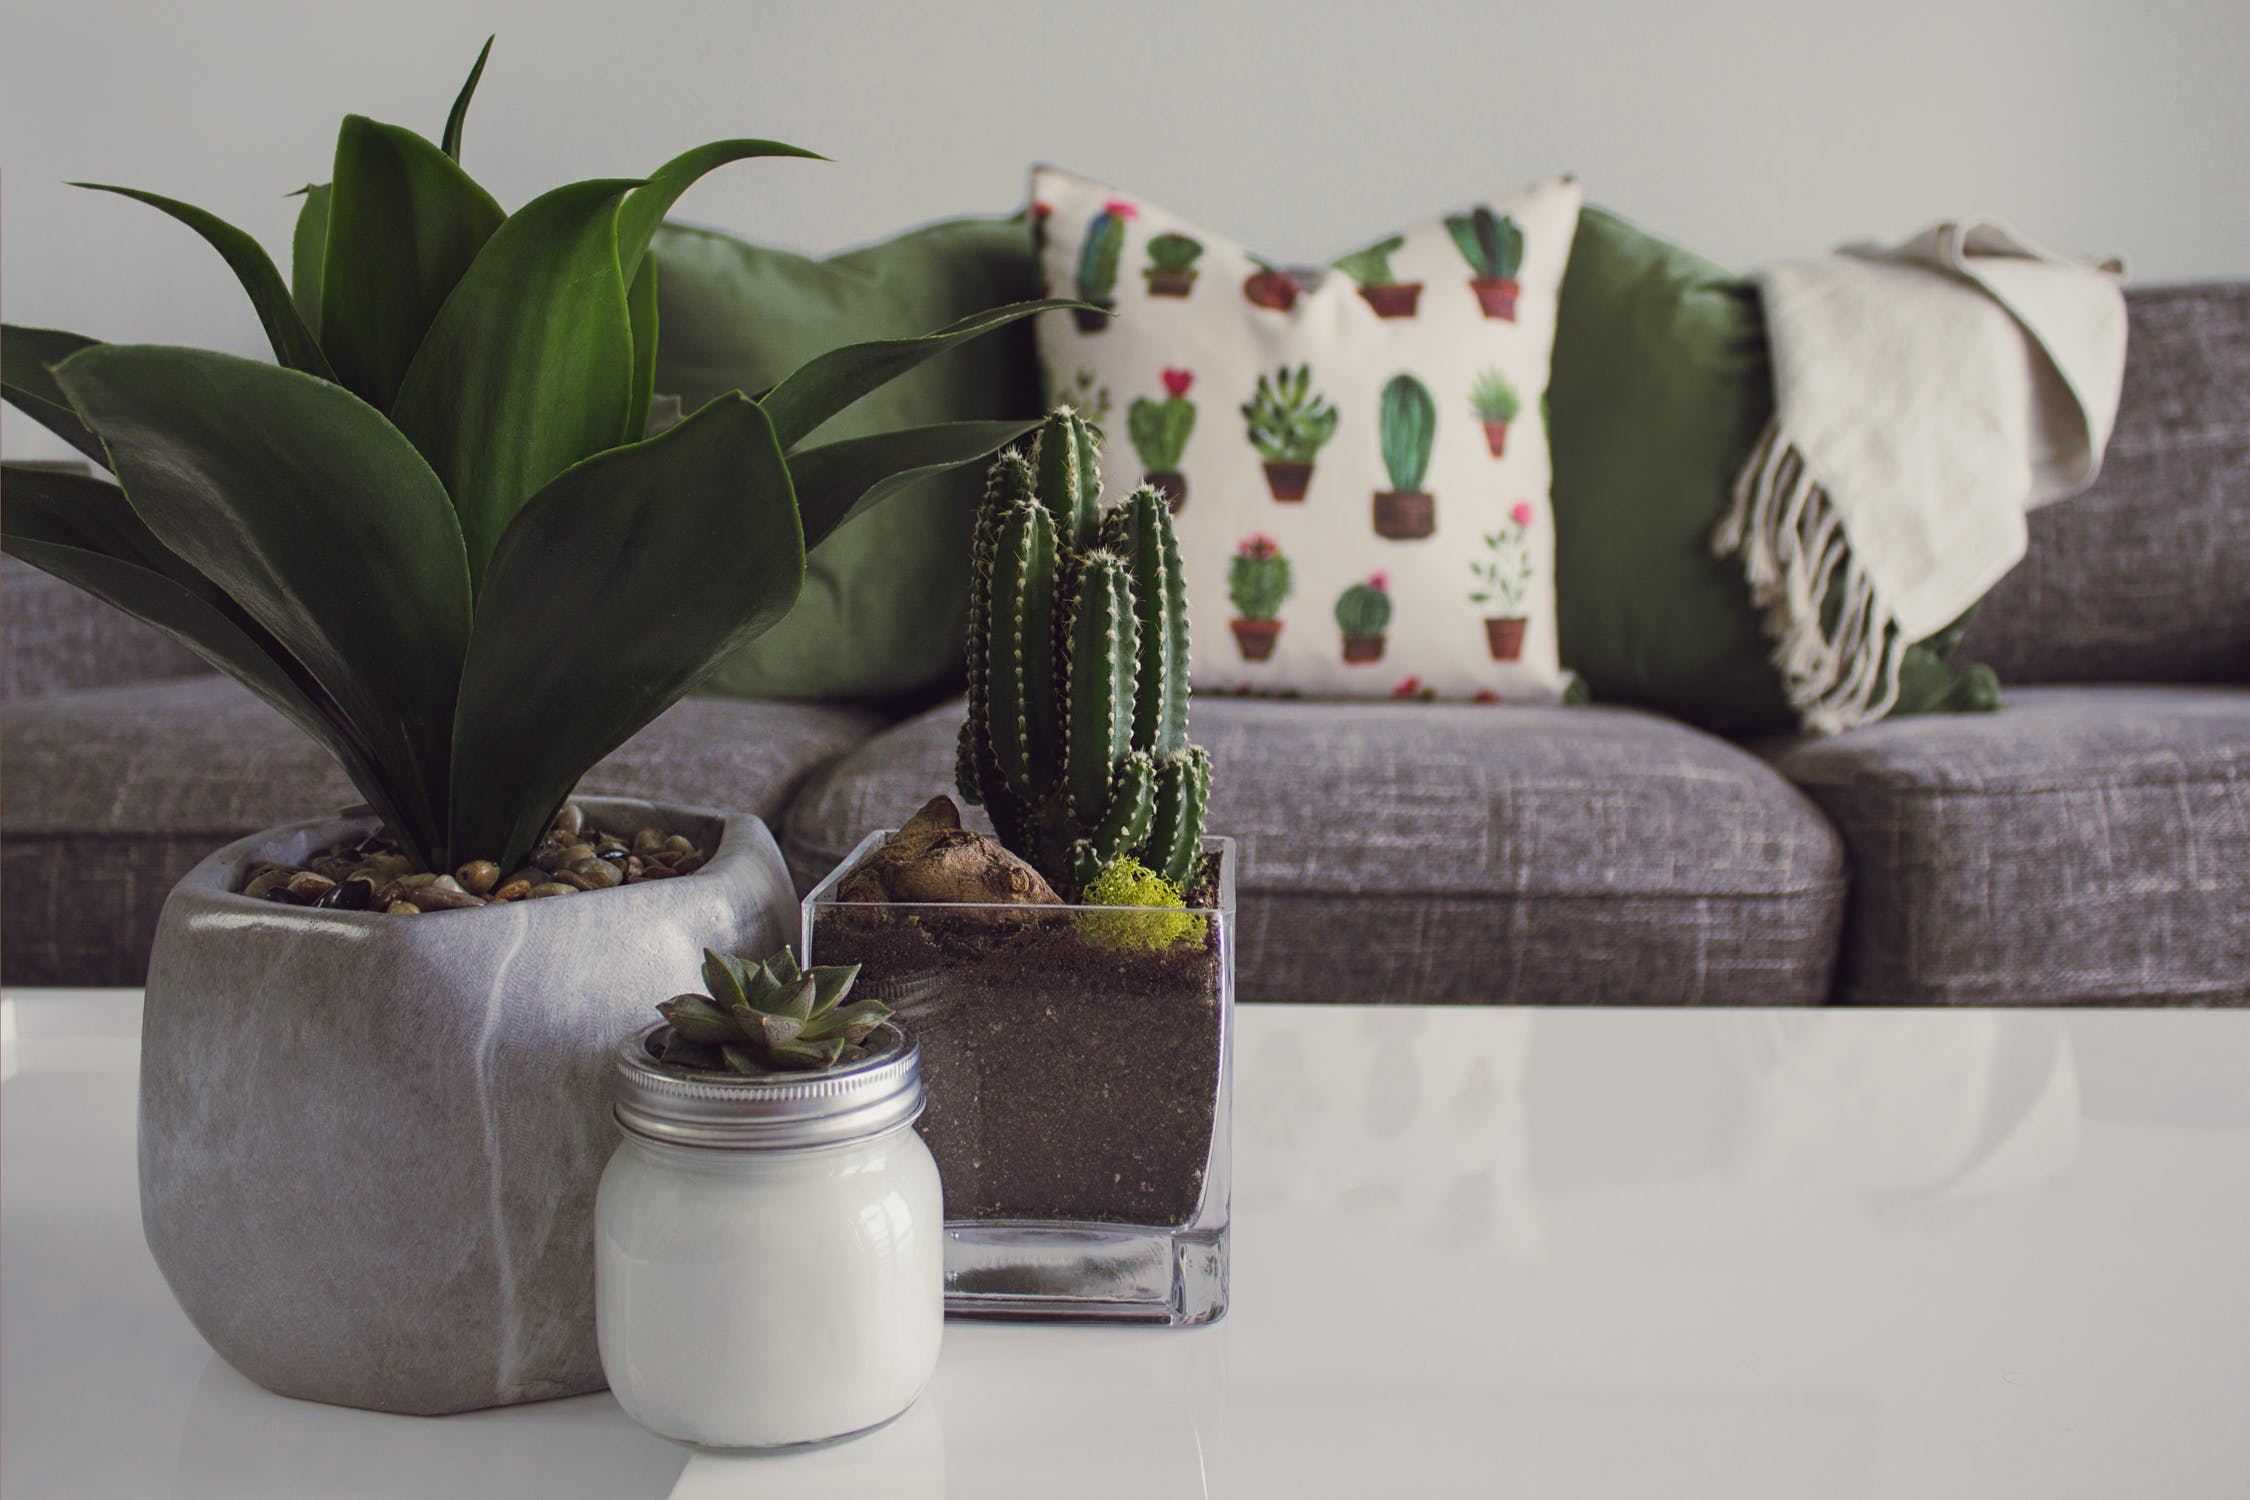 Bliss Home Care | Benefits of indoor plants